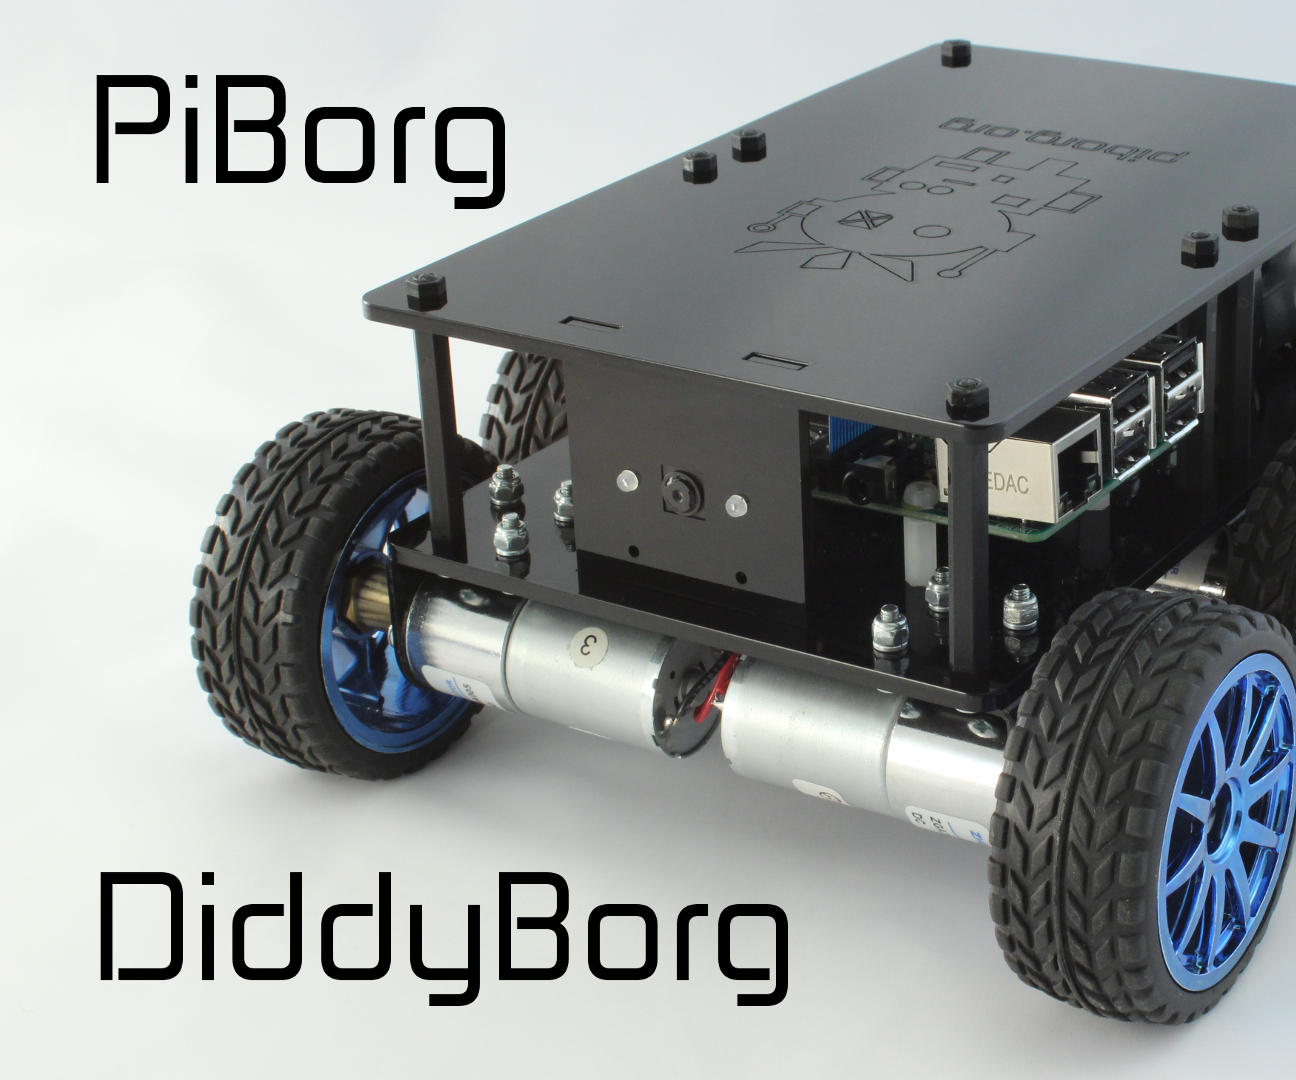 DiddyBorg: The Mini 6 wheeled Raspberry Pi Robot!